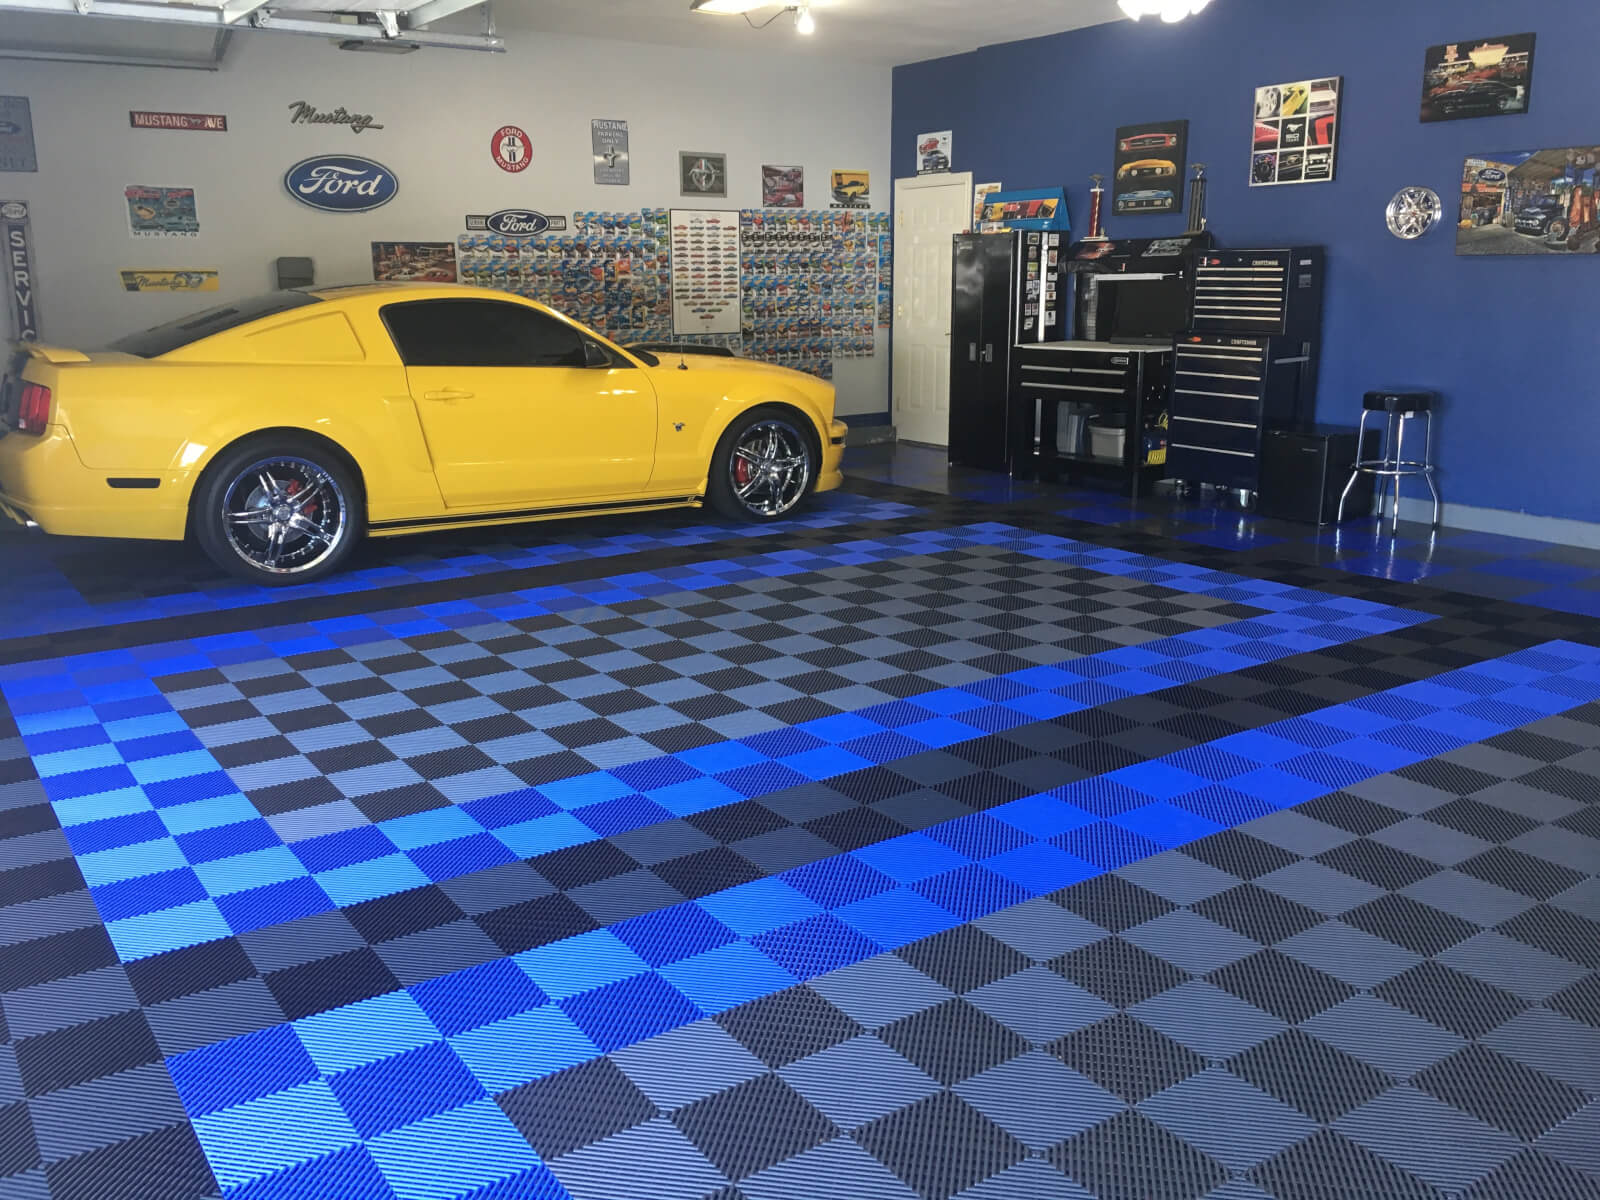 Top 10 Questions About Garage Floor Tiles In 2018